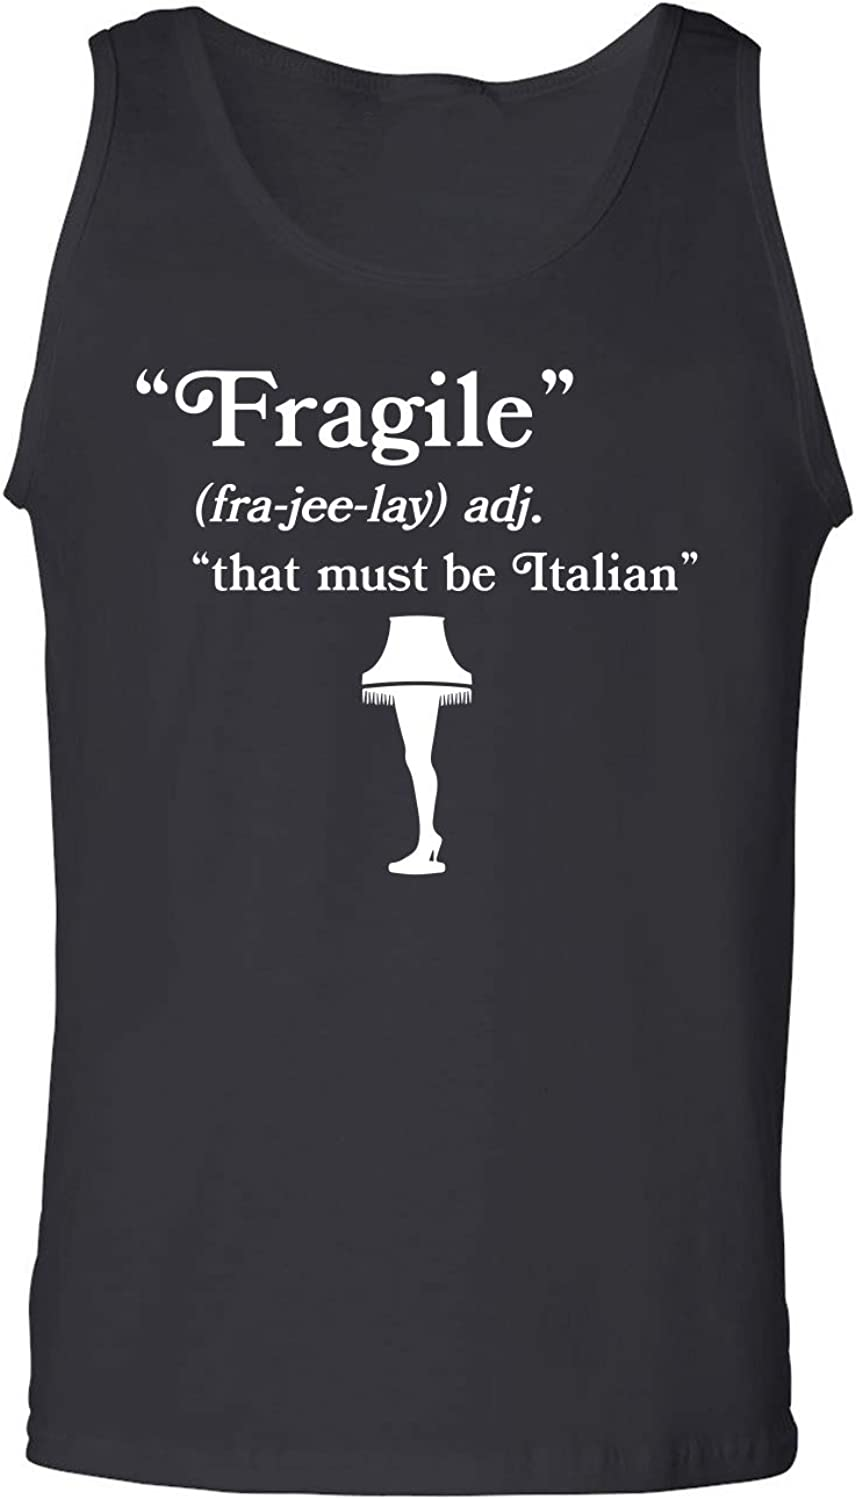 Fragile That Must Be Italian Adult Tank Top in Black - XX-Large